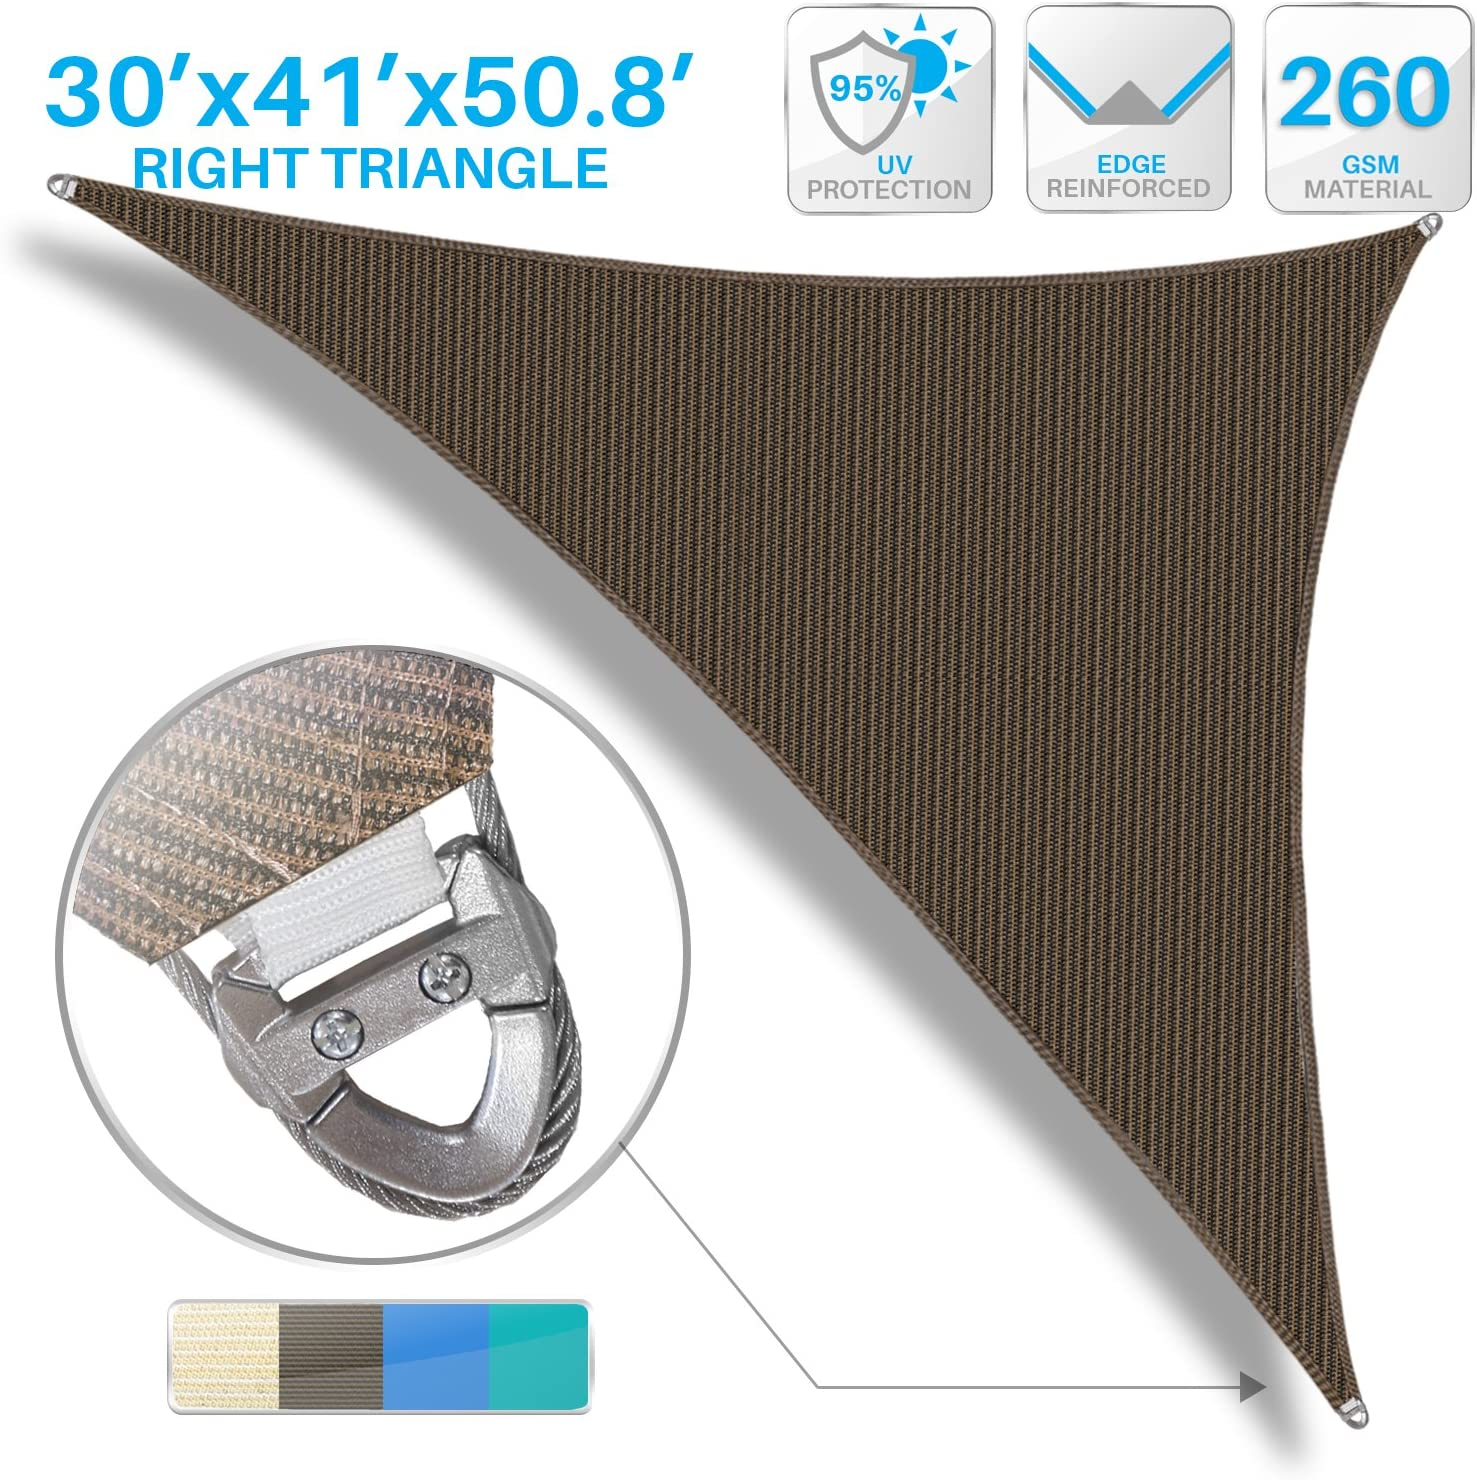 Patio Large Sonne Shade Sail 30' X 41' X 51' Right Triangle Heavy Duty Strengthen Durable Outdoor Canopy Uv Block Fabric A-Ring Design Metal Spring Reinforcement 7 Jahr Warranty -Brown